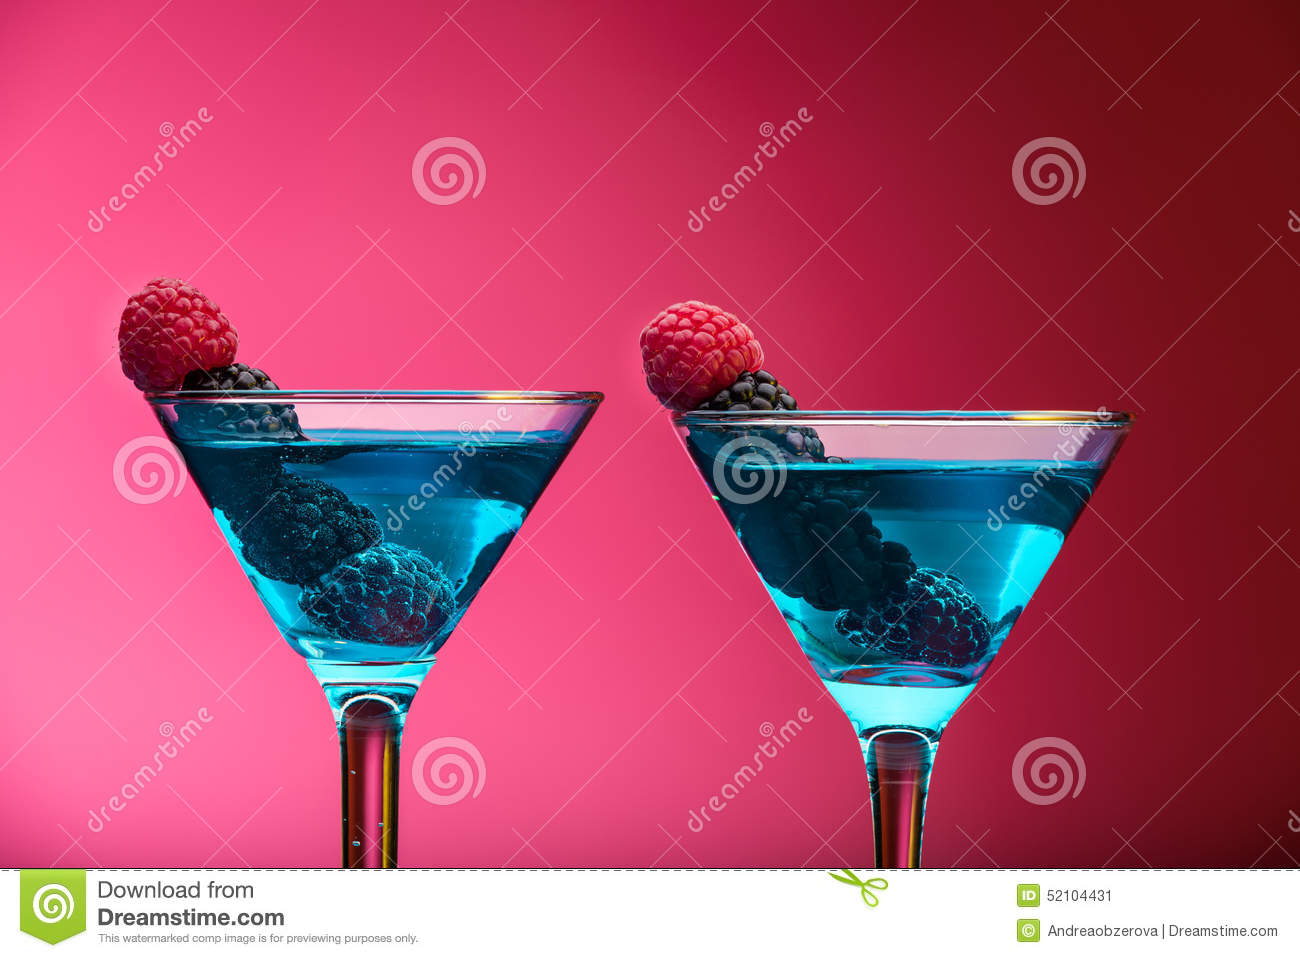 Colorful cocktails garnished with berries, studio shot